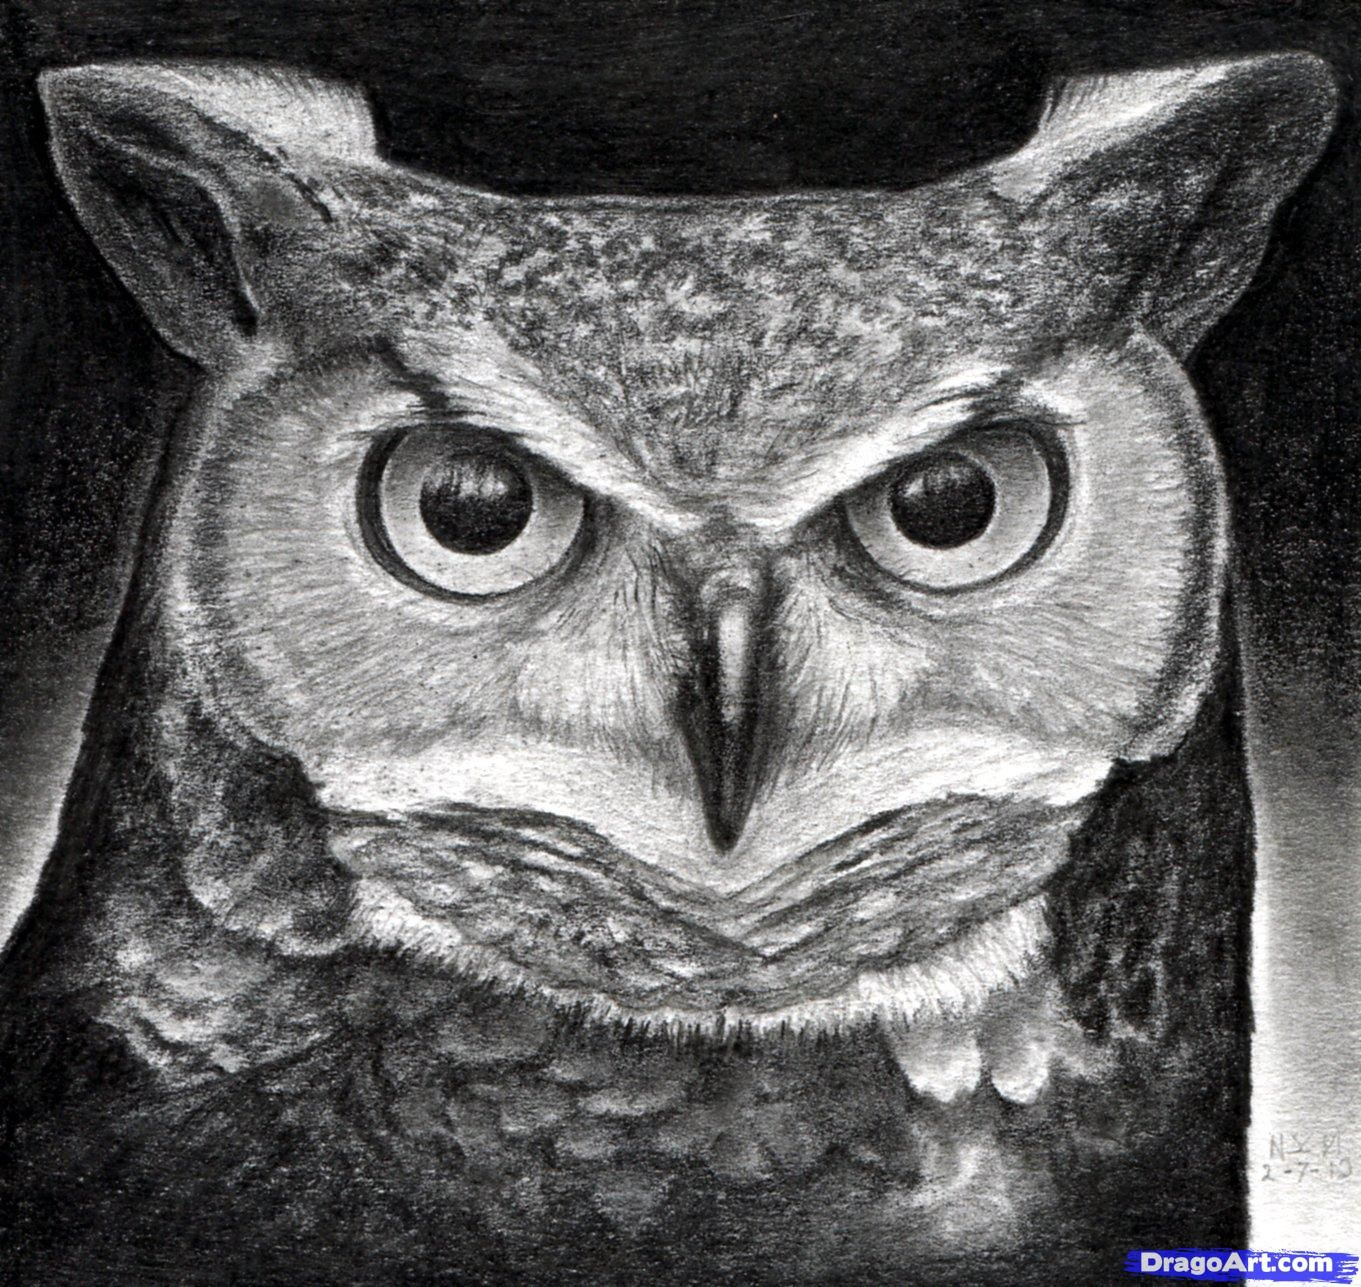 How to draw an owl: a master class